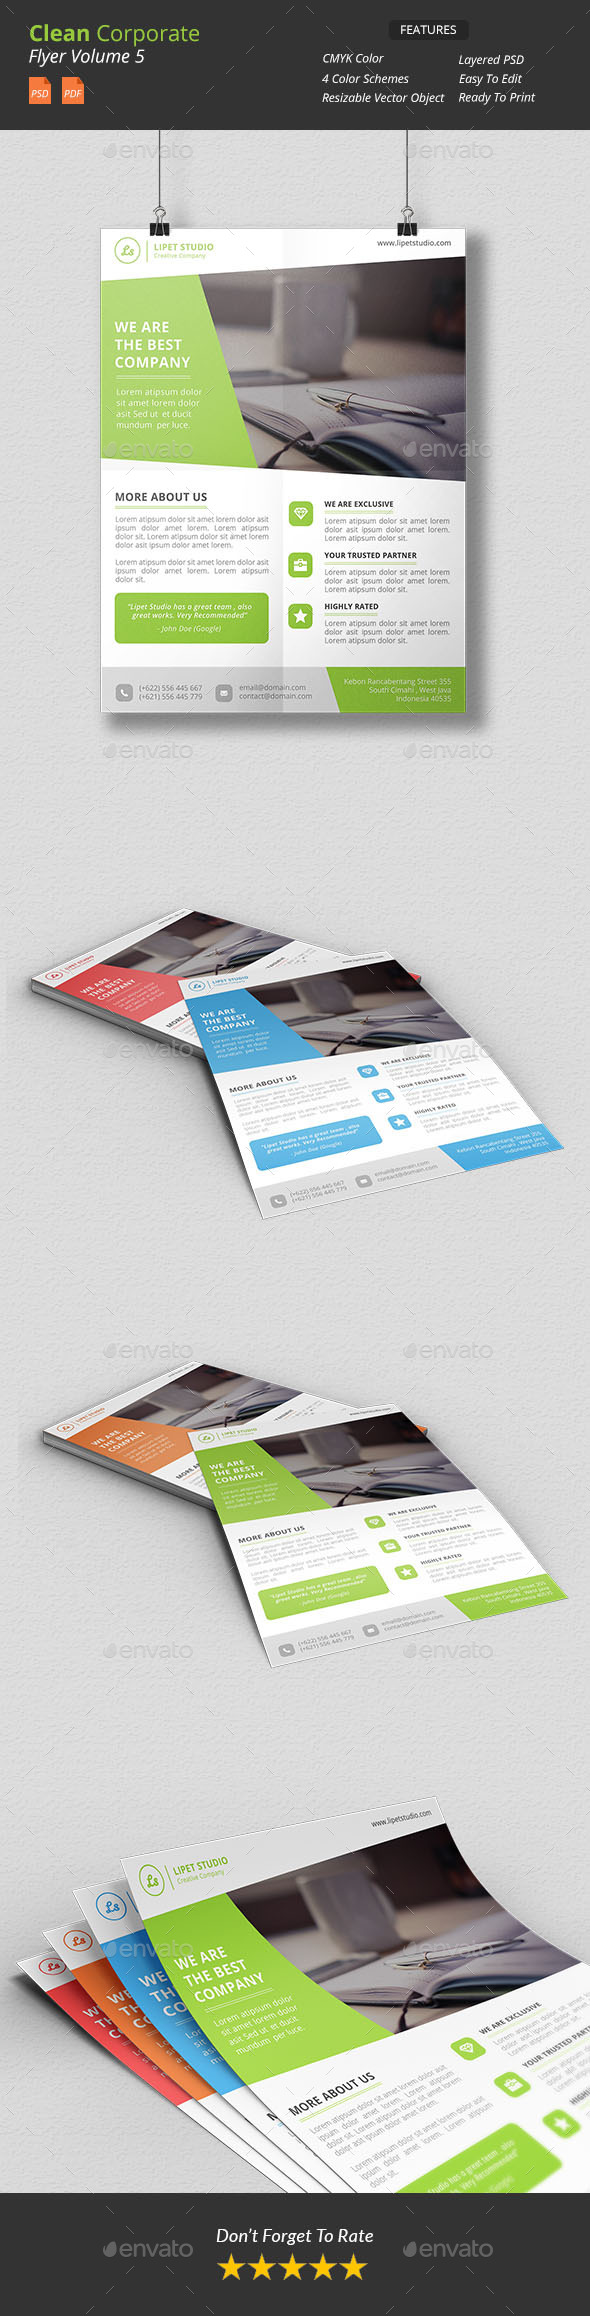 GraphicRiver Clean Corporate Flyer v5 9939881